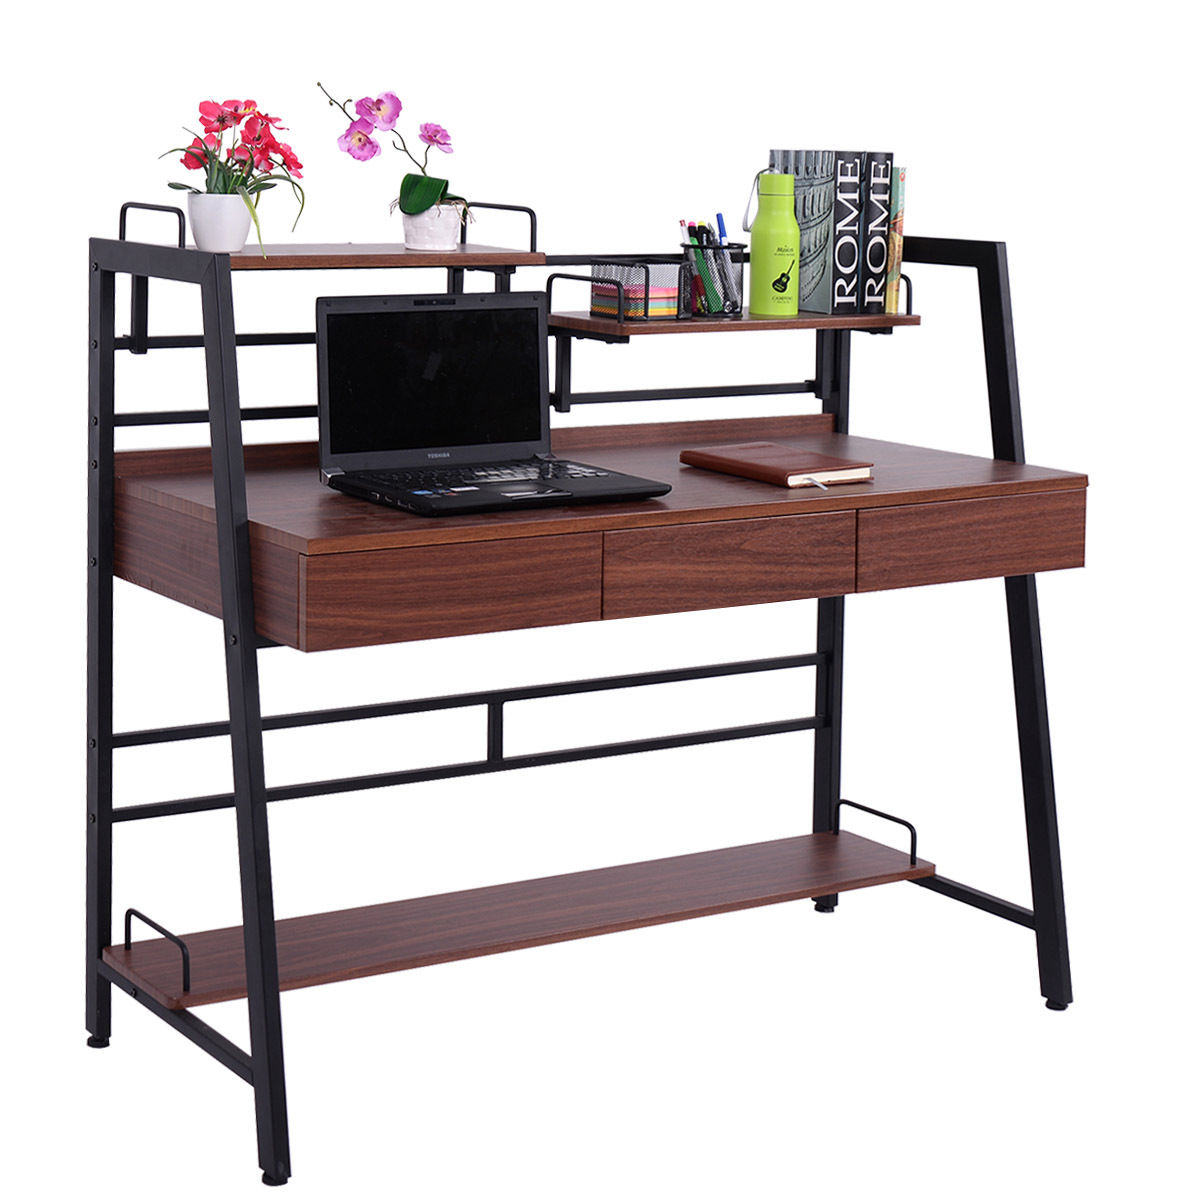 Giantex Computer Desk PC Laptop Table with Drawer Shelf Workstation Modern Wood Home Office Furniture HW54019 giantex height adjustable standing desk converter sit stand computer laptop workstation modern wood furniture hw57064